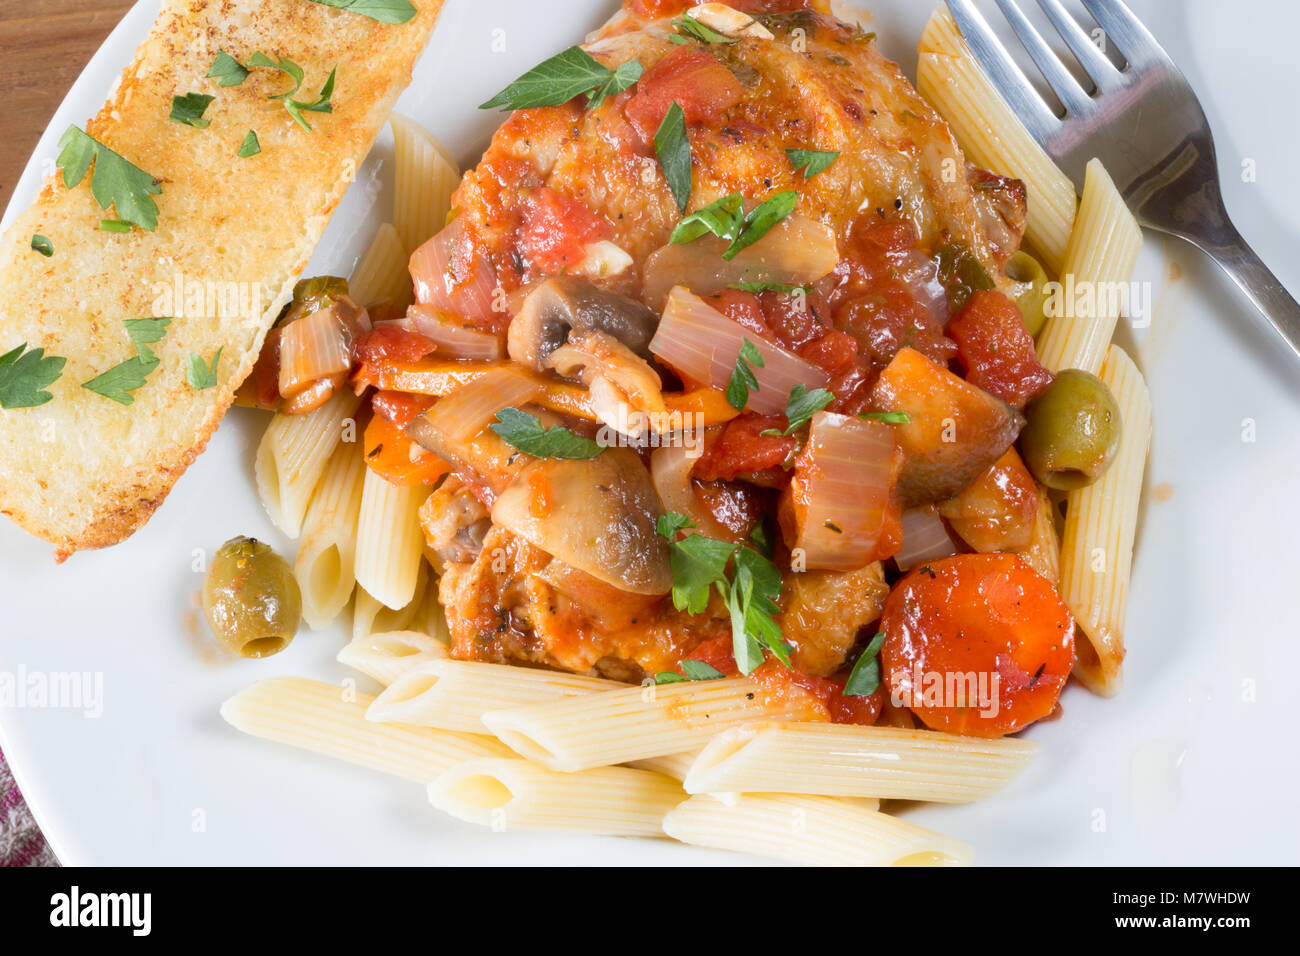 A portion of Italian style Chicken Cacciatore served with penne pasta and Garlic bread. - Stock Image